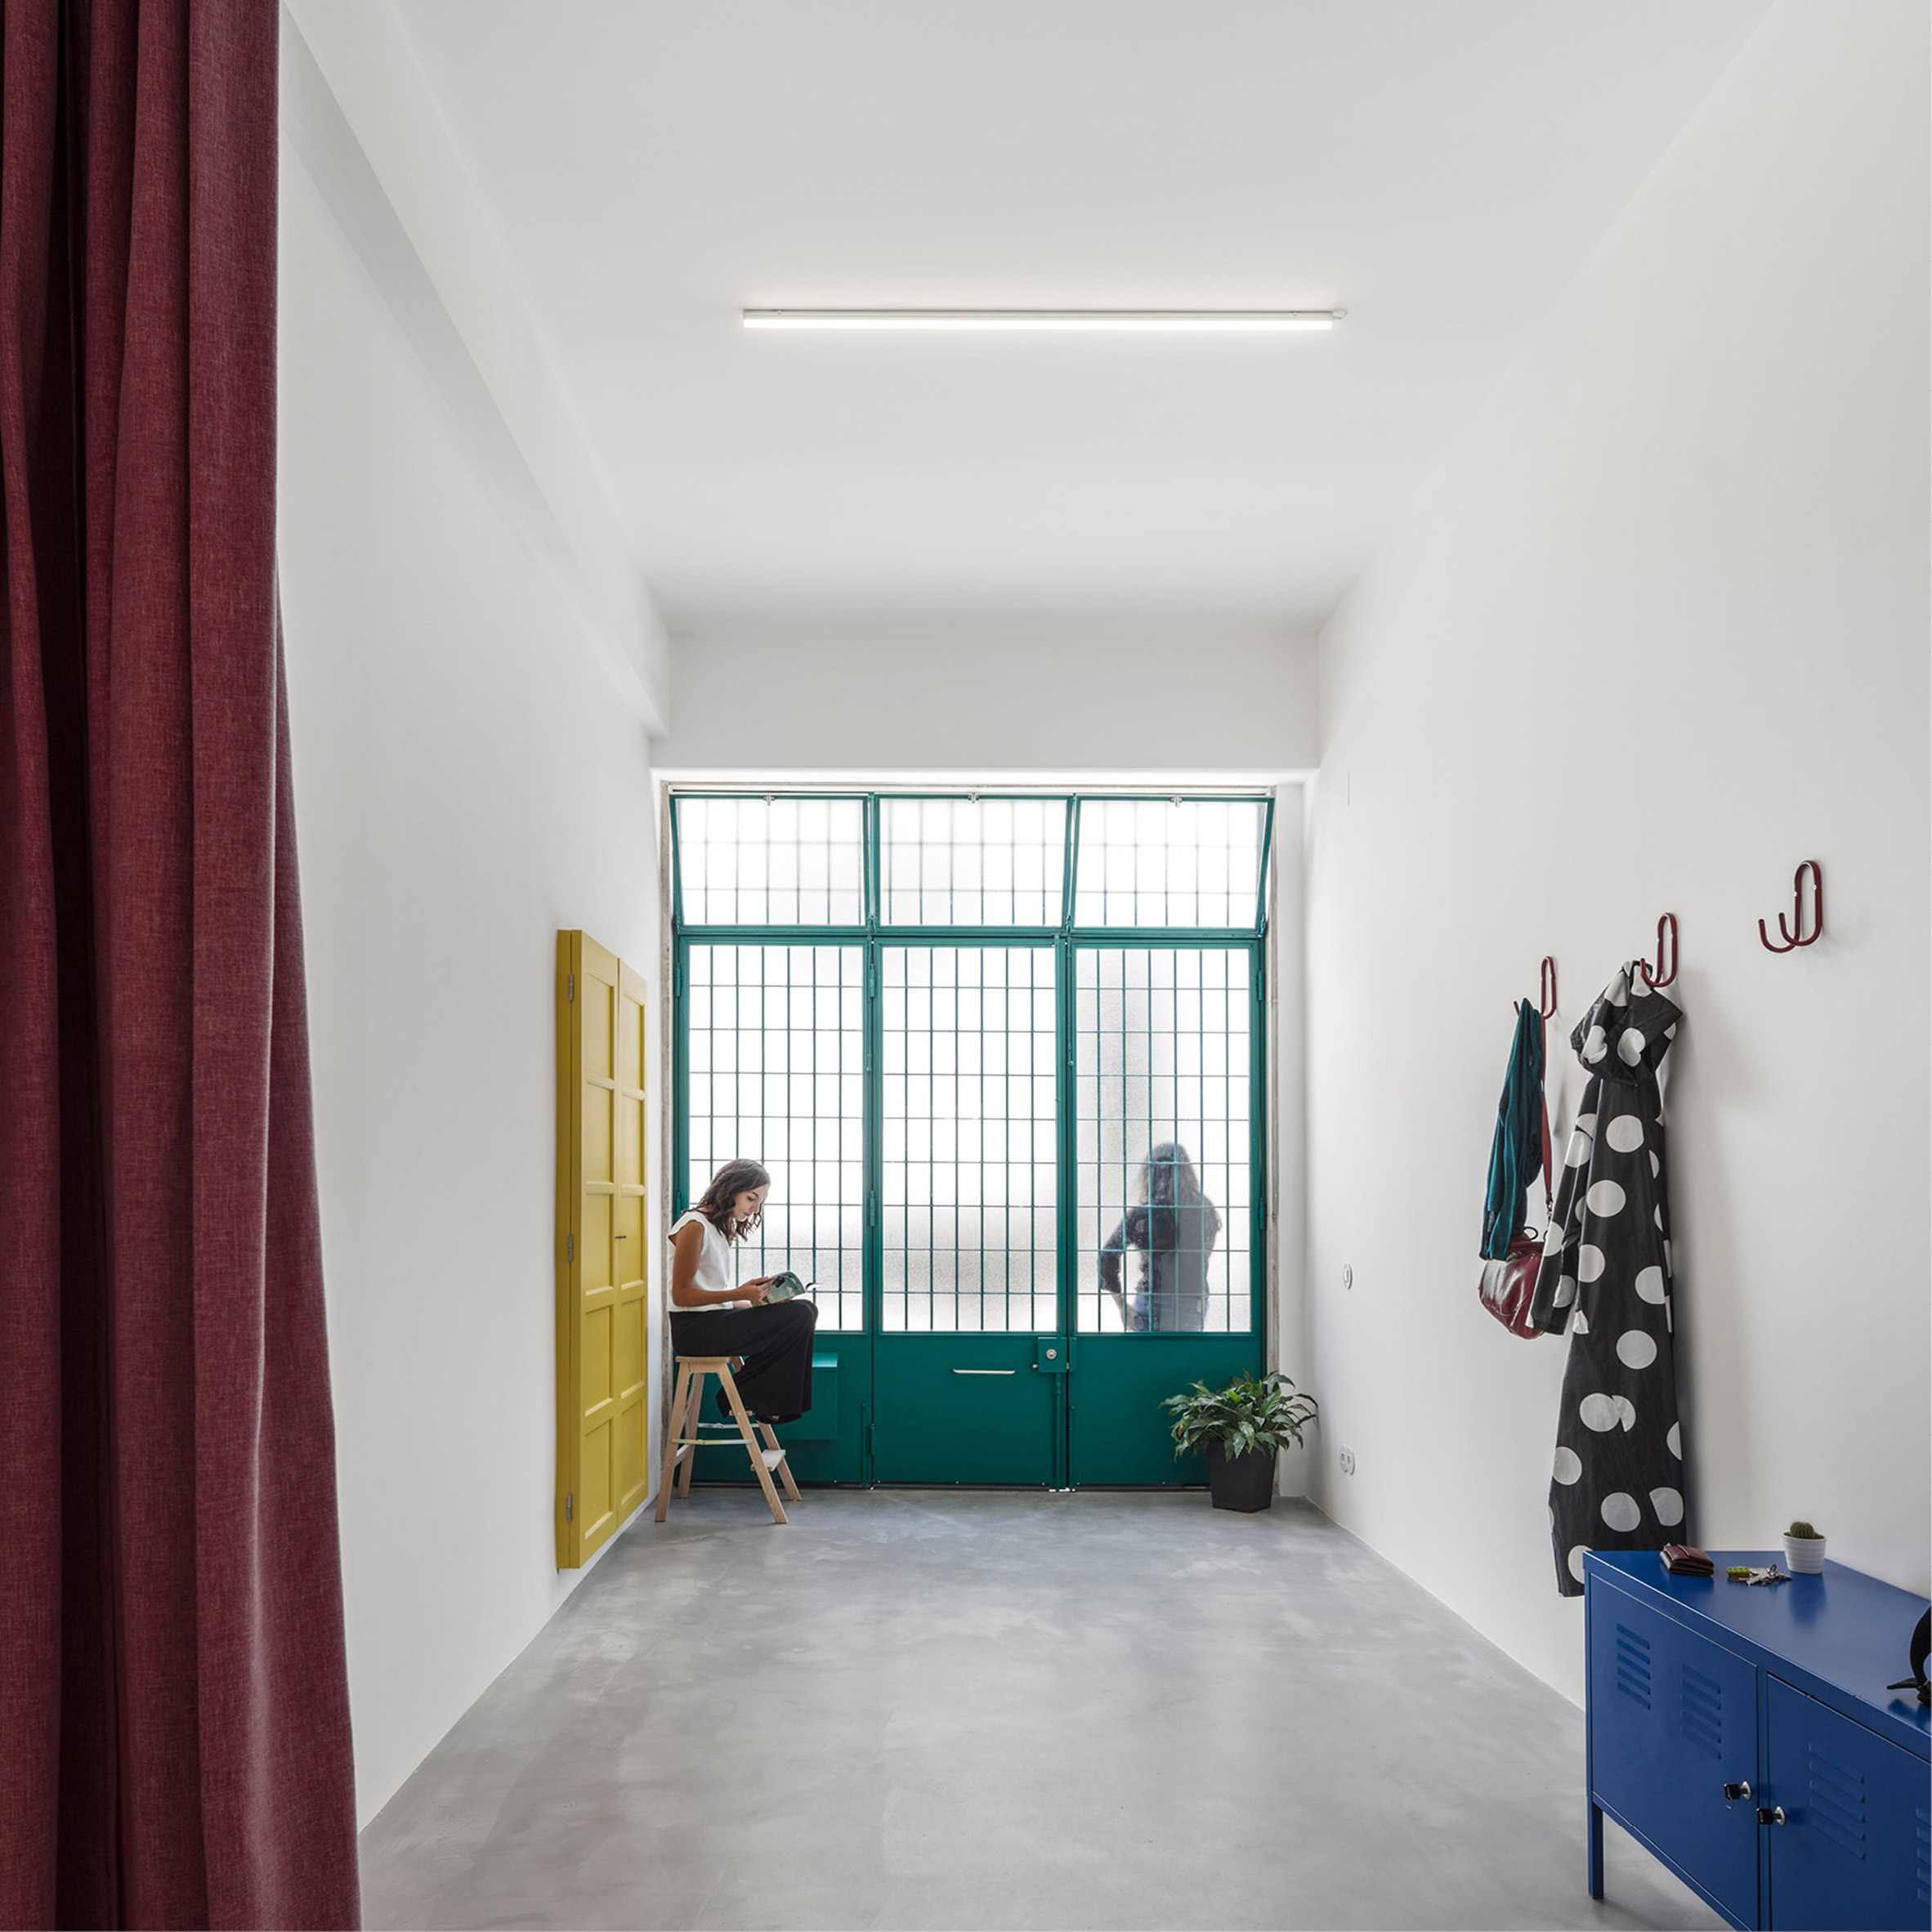 Design News: Portuguese Studio Fala Atelier Transforms Garage into Stunning Home design news Design News: Studio Fala Atelier Transforms Garage into Stunning Home Design News Portuguese Studio Fala Atelier Transforms Garage into Stunning Home 3